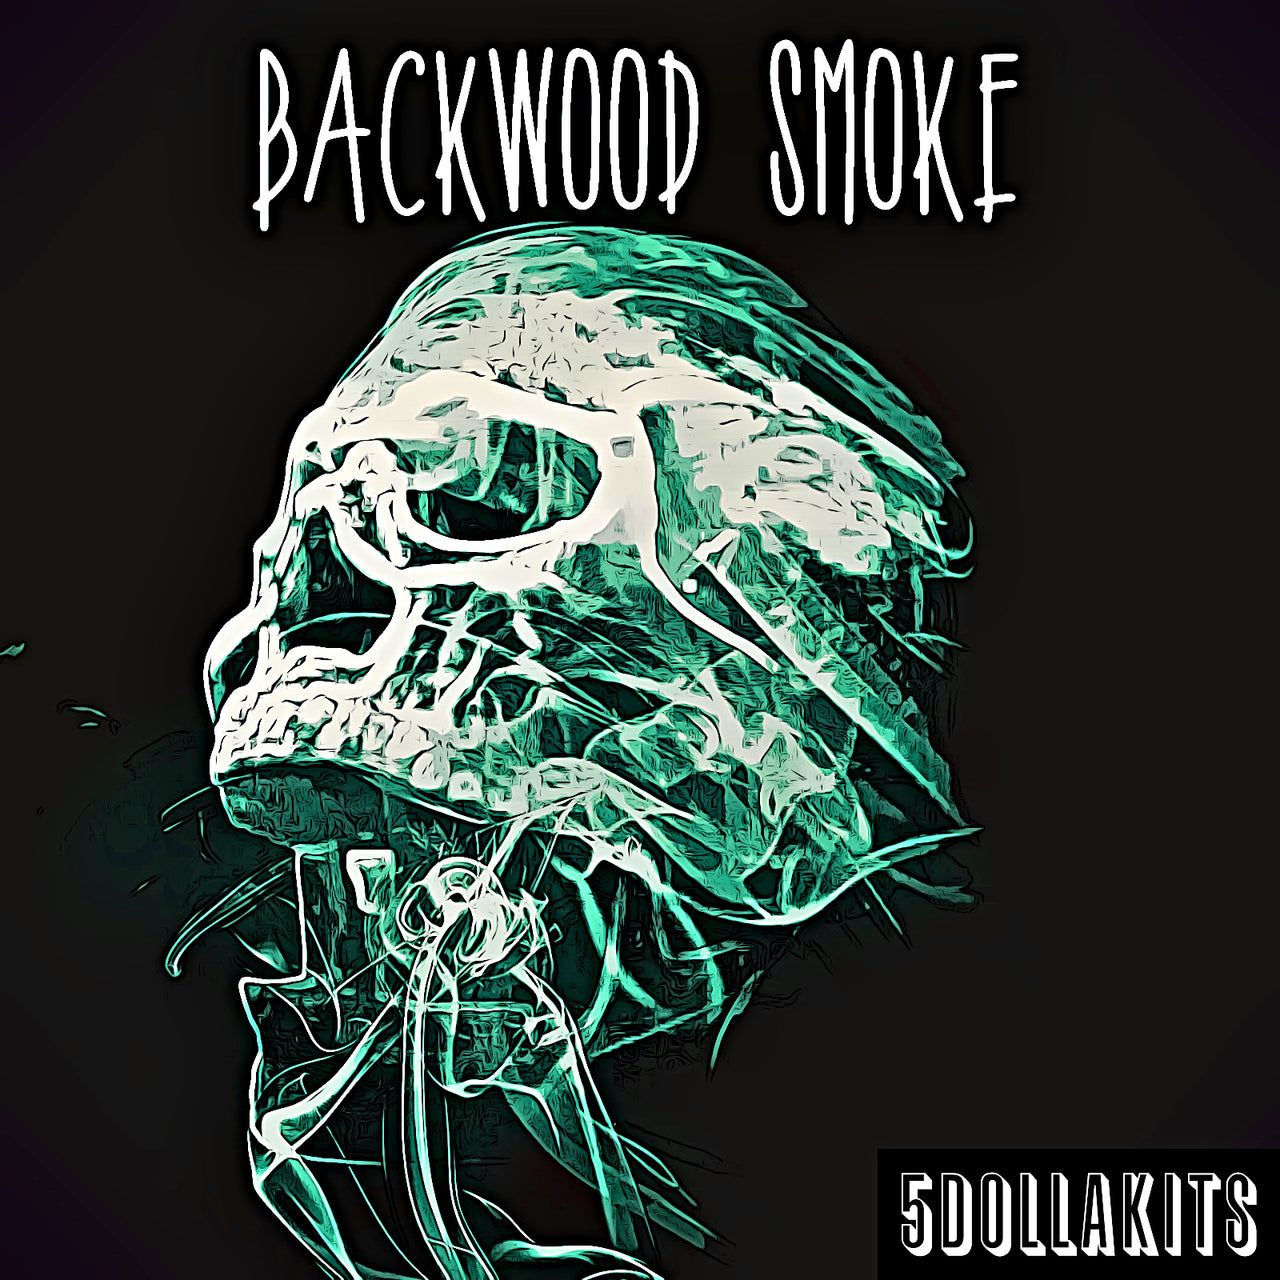 Backwood Smoke